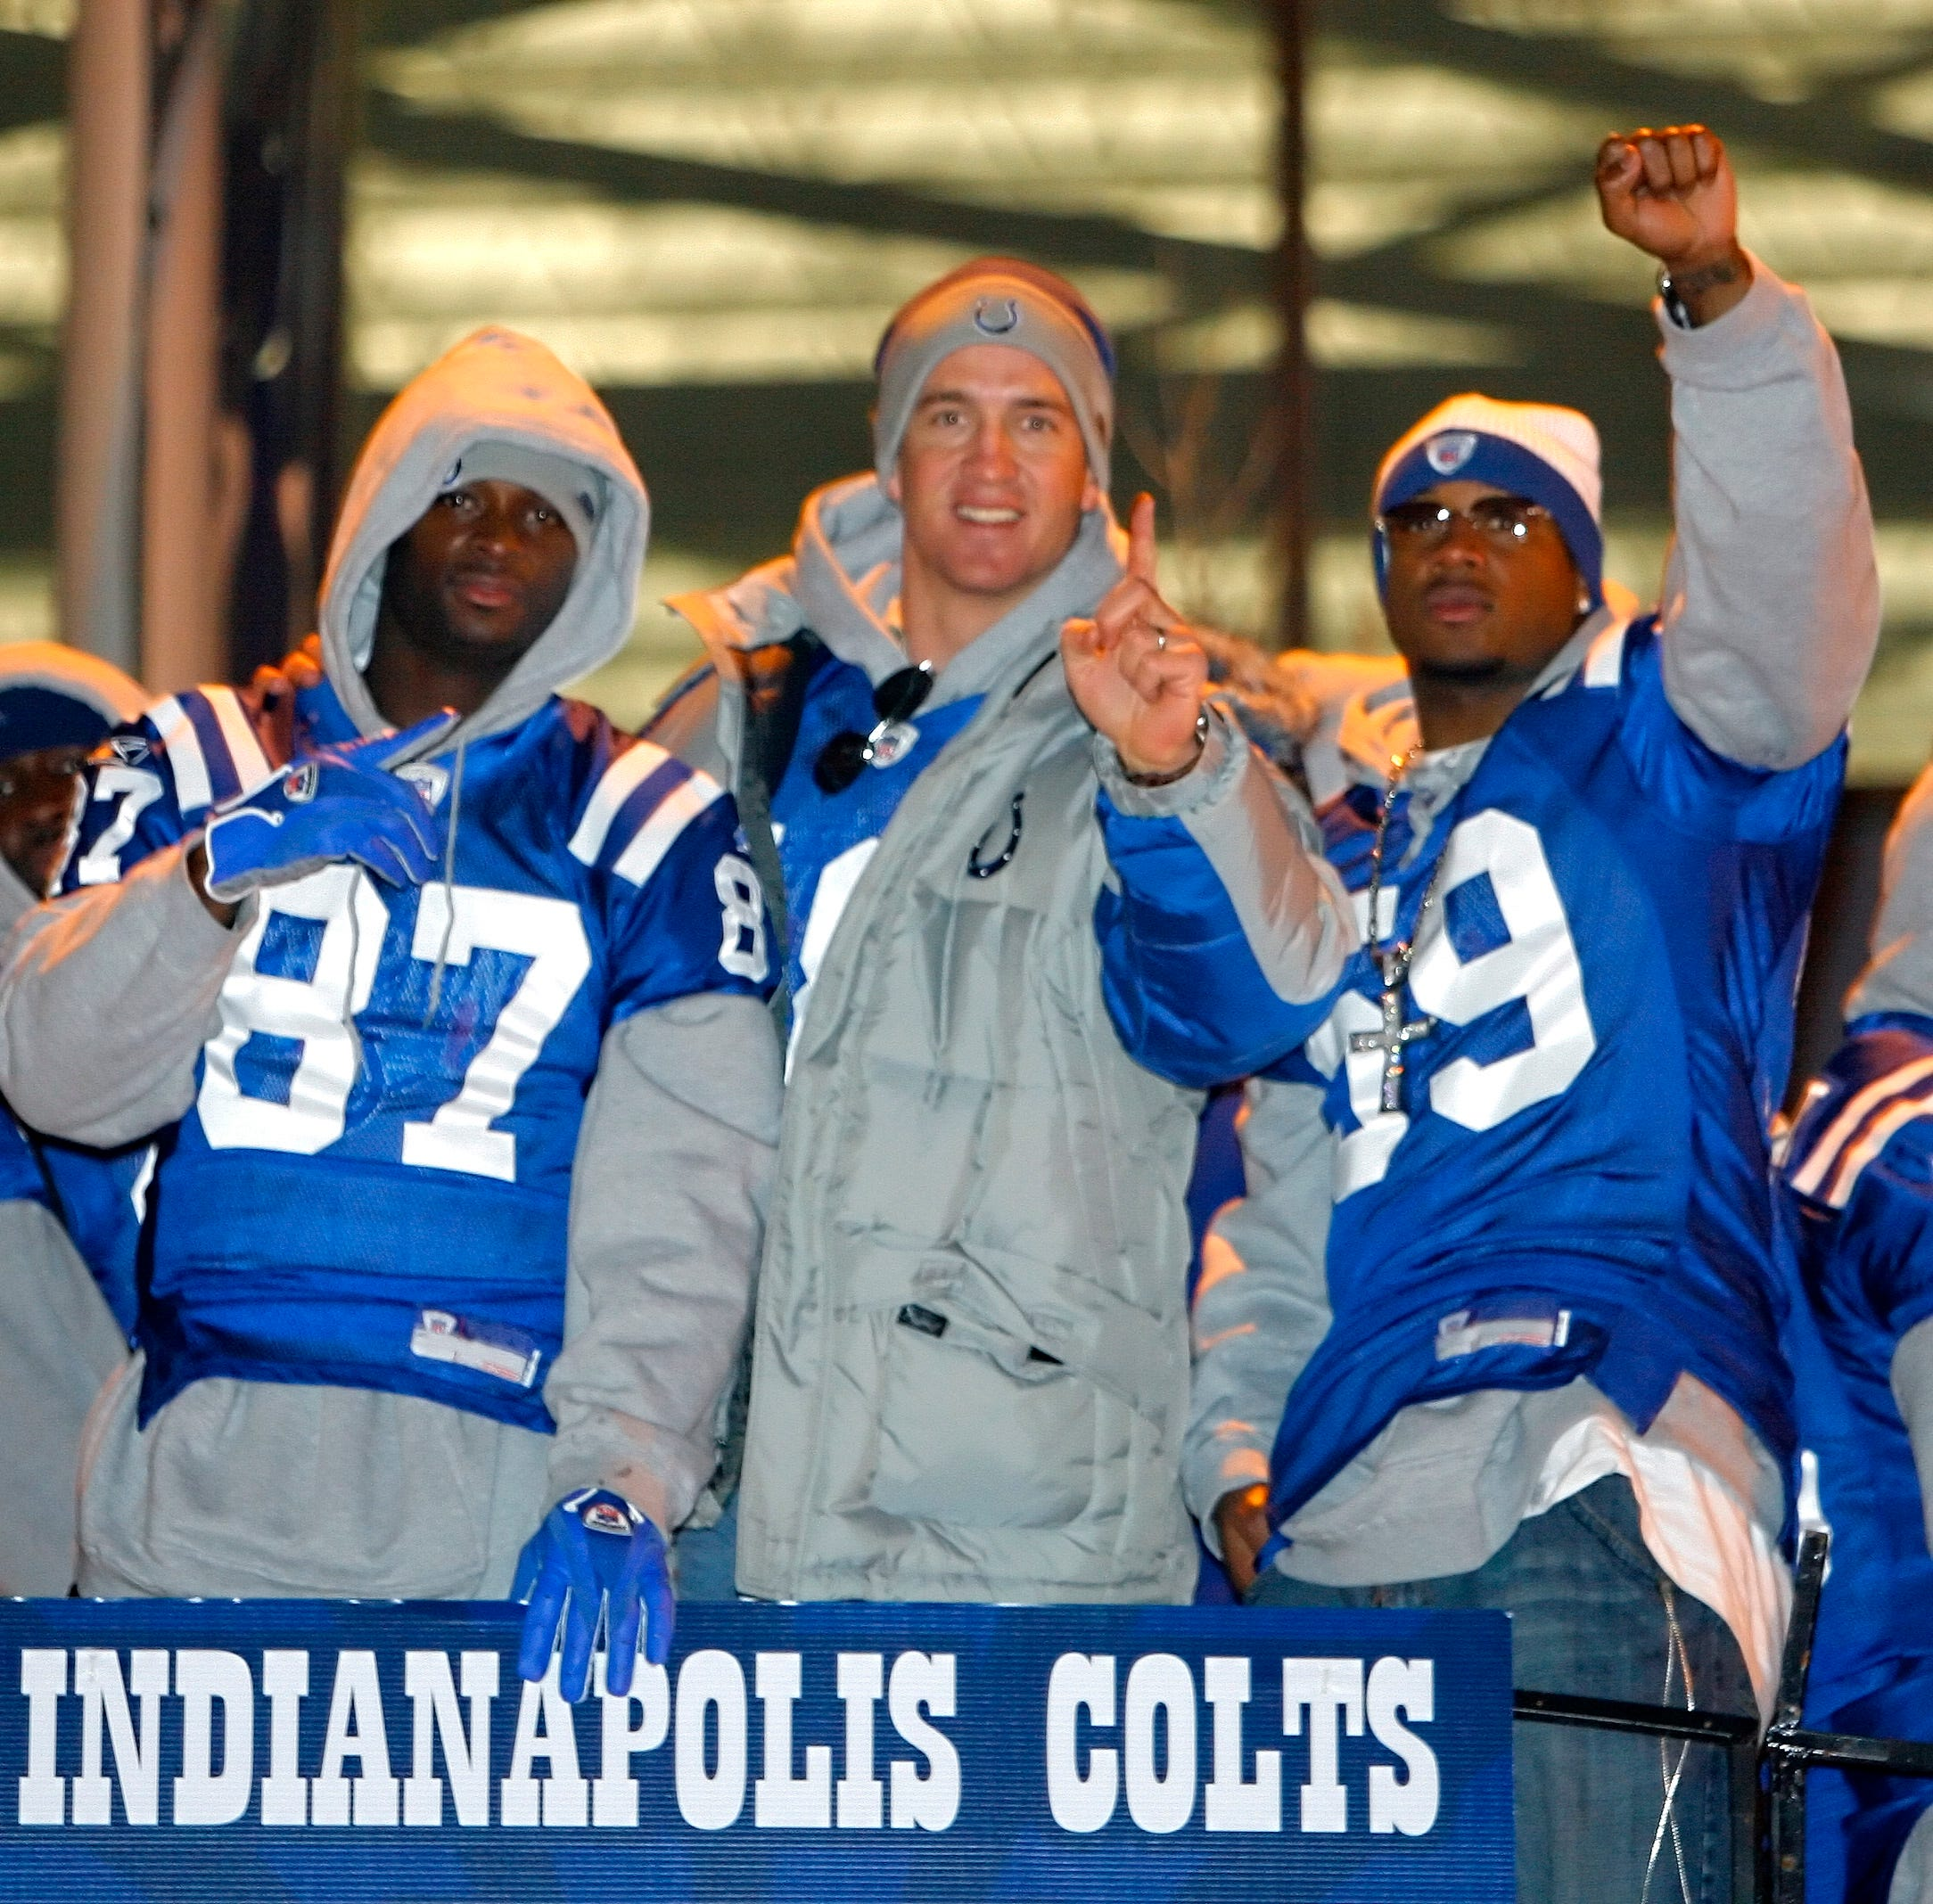 db18a607 http://www.indystar.com/picture-gallery/sports/nfl/colts/2017/10/05/colts  ...